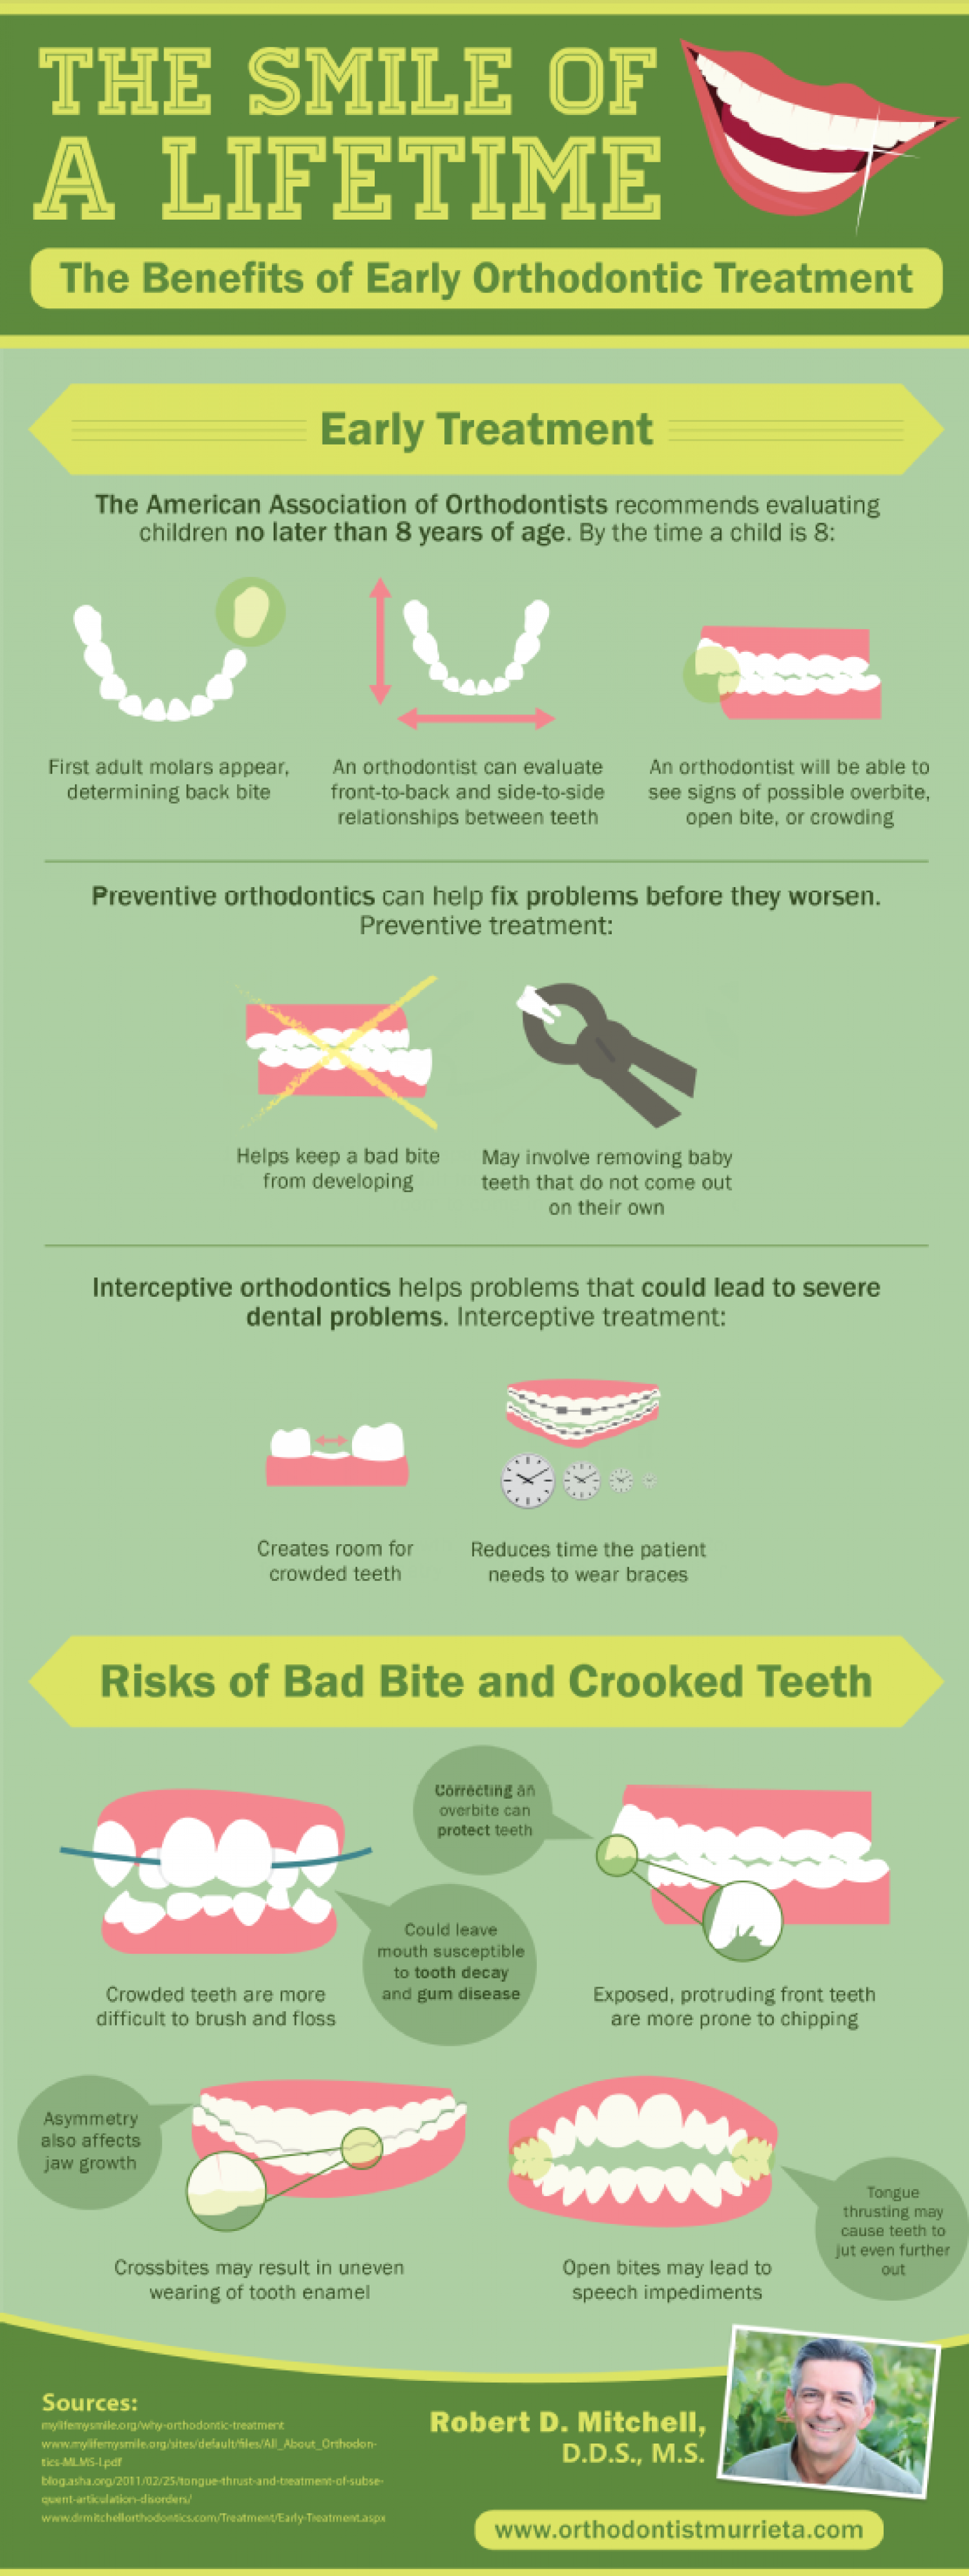 The Smile of a Lifetime: Benefits of Early Orthodontic Treatment Infographic